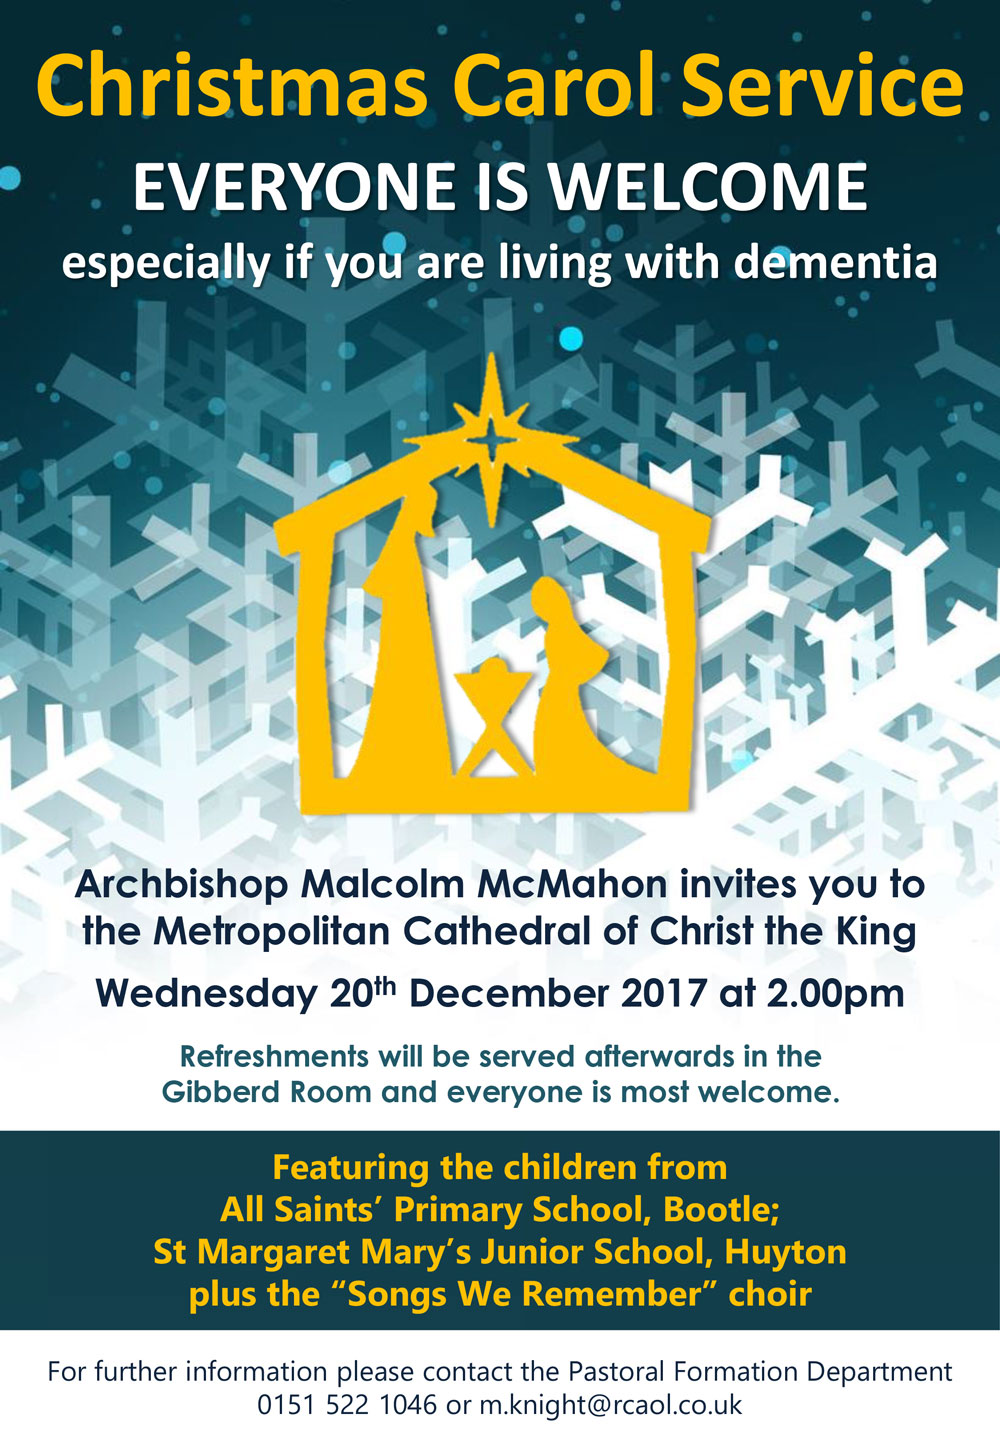 Dementia Friendly Carol Service 2017